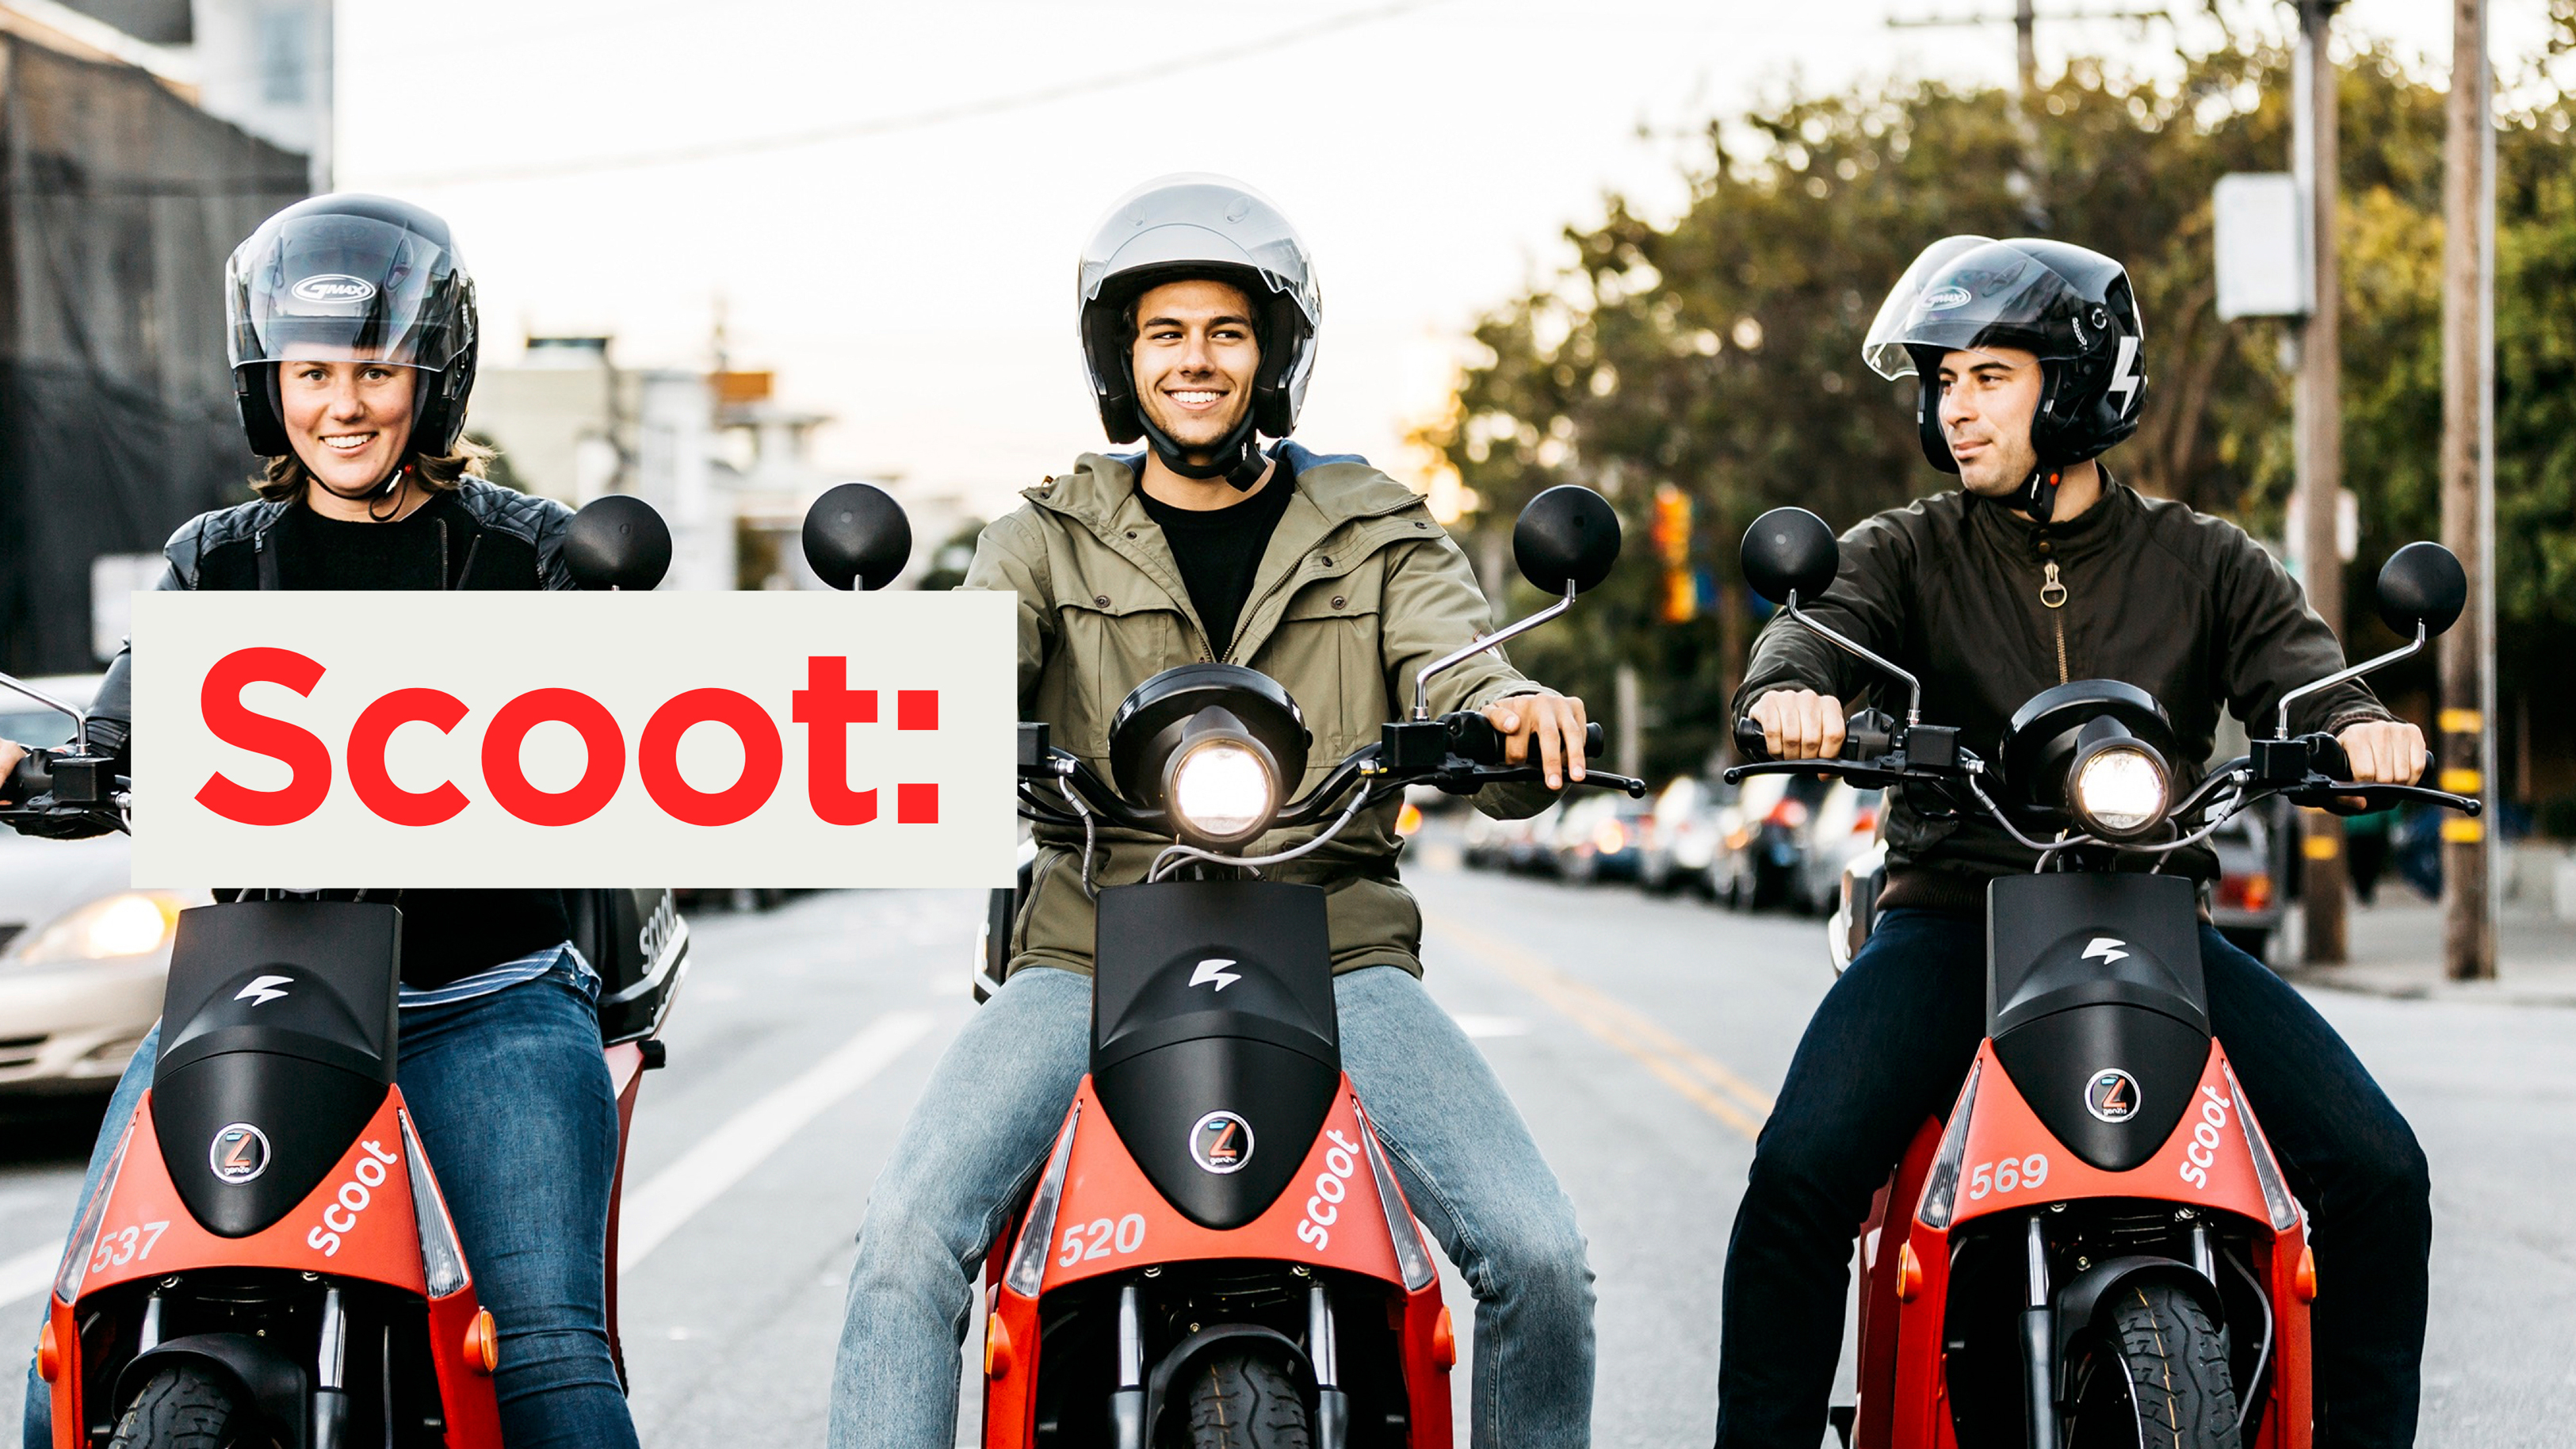 3 people riding scooters with scoot logo imposed on top of the image